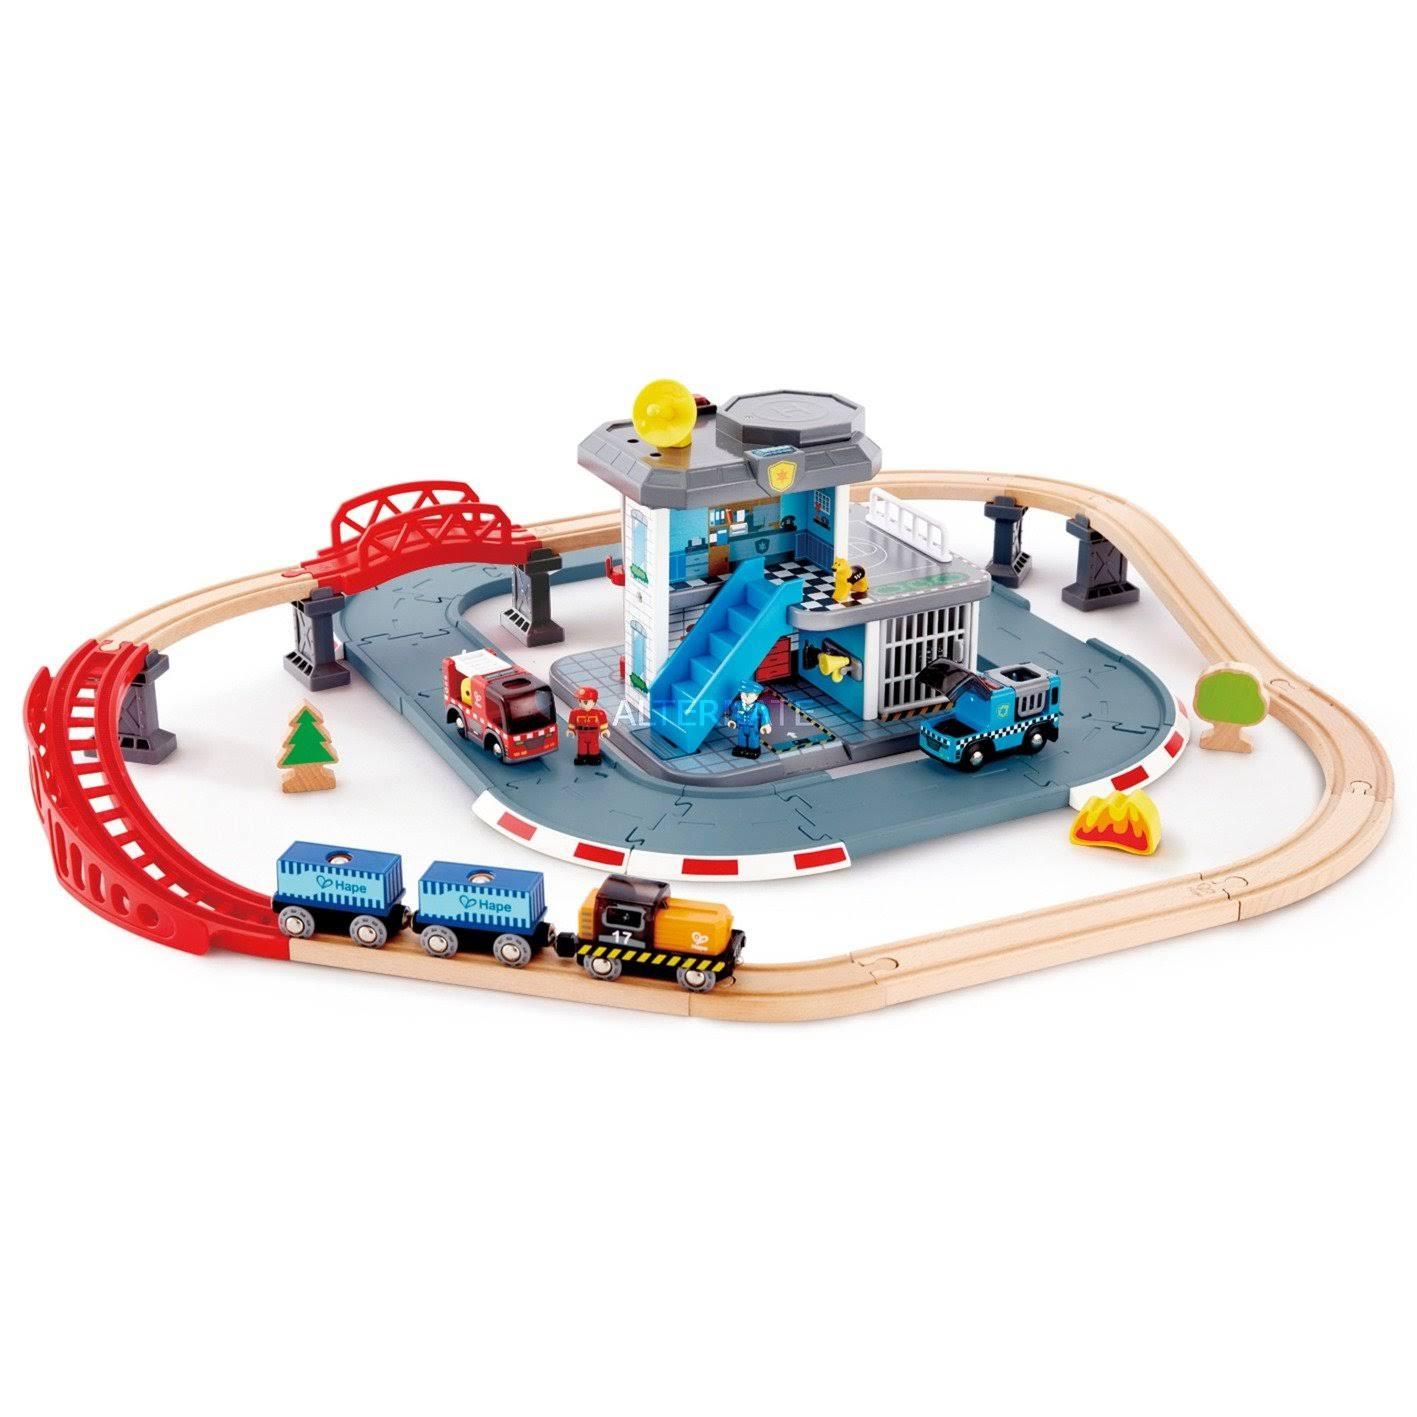 Hape Emergency Services HQ Railway Set